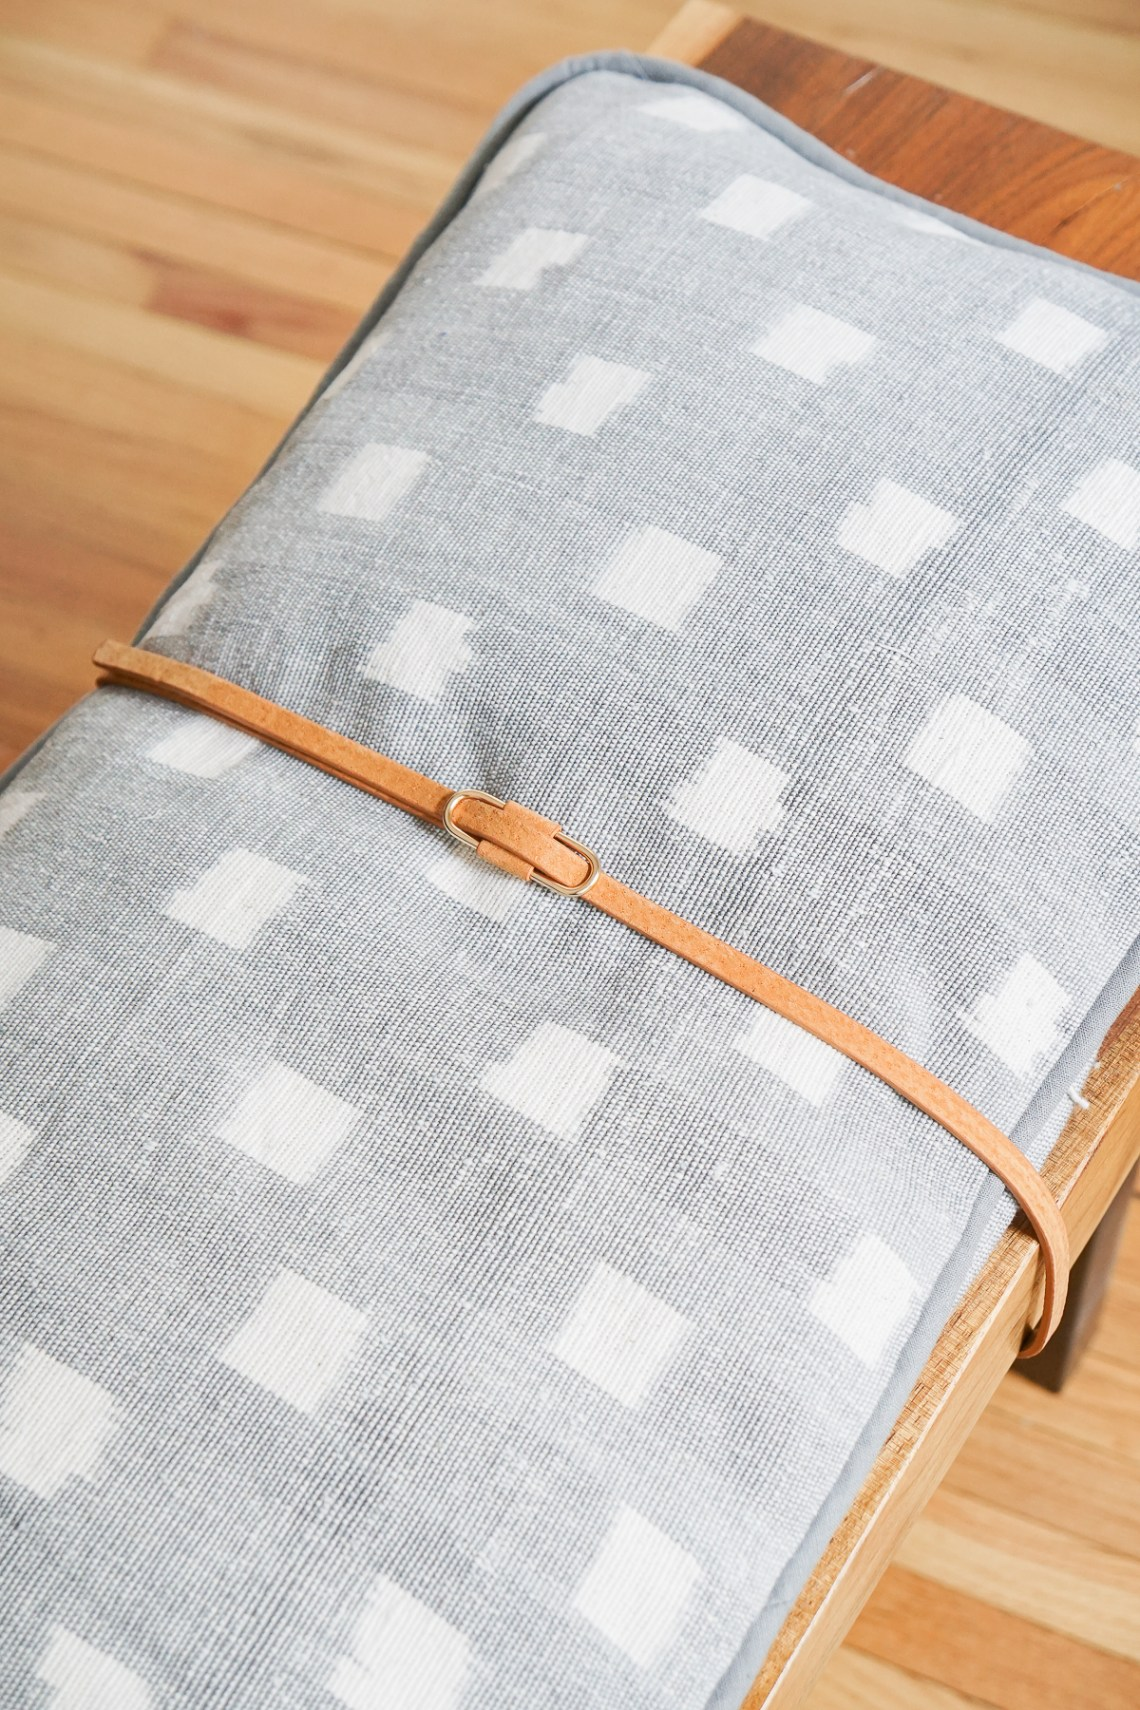 Diy Modern Bench Cushion With Leather Straps Francois Et Moi